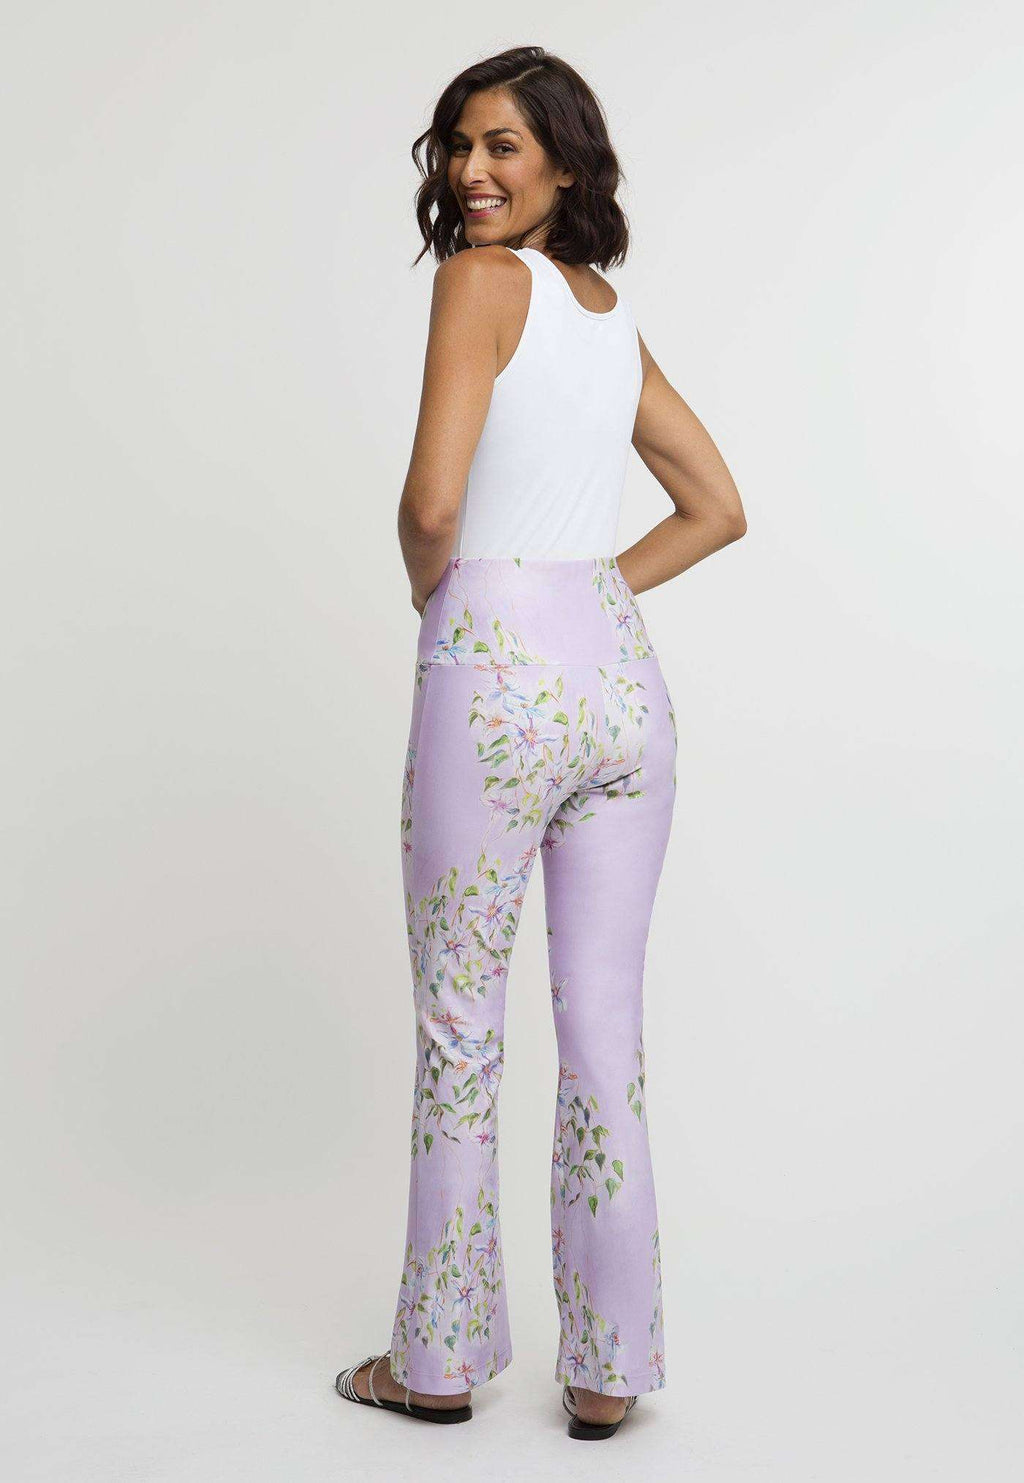 Elaine Stretch Pant in Sagaponack